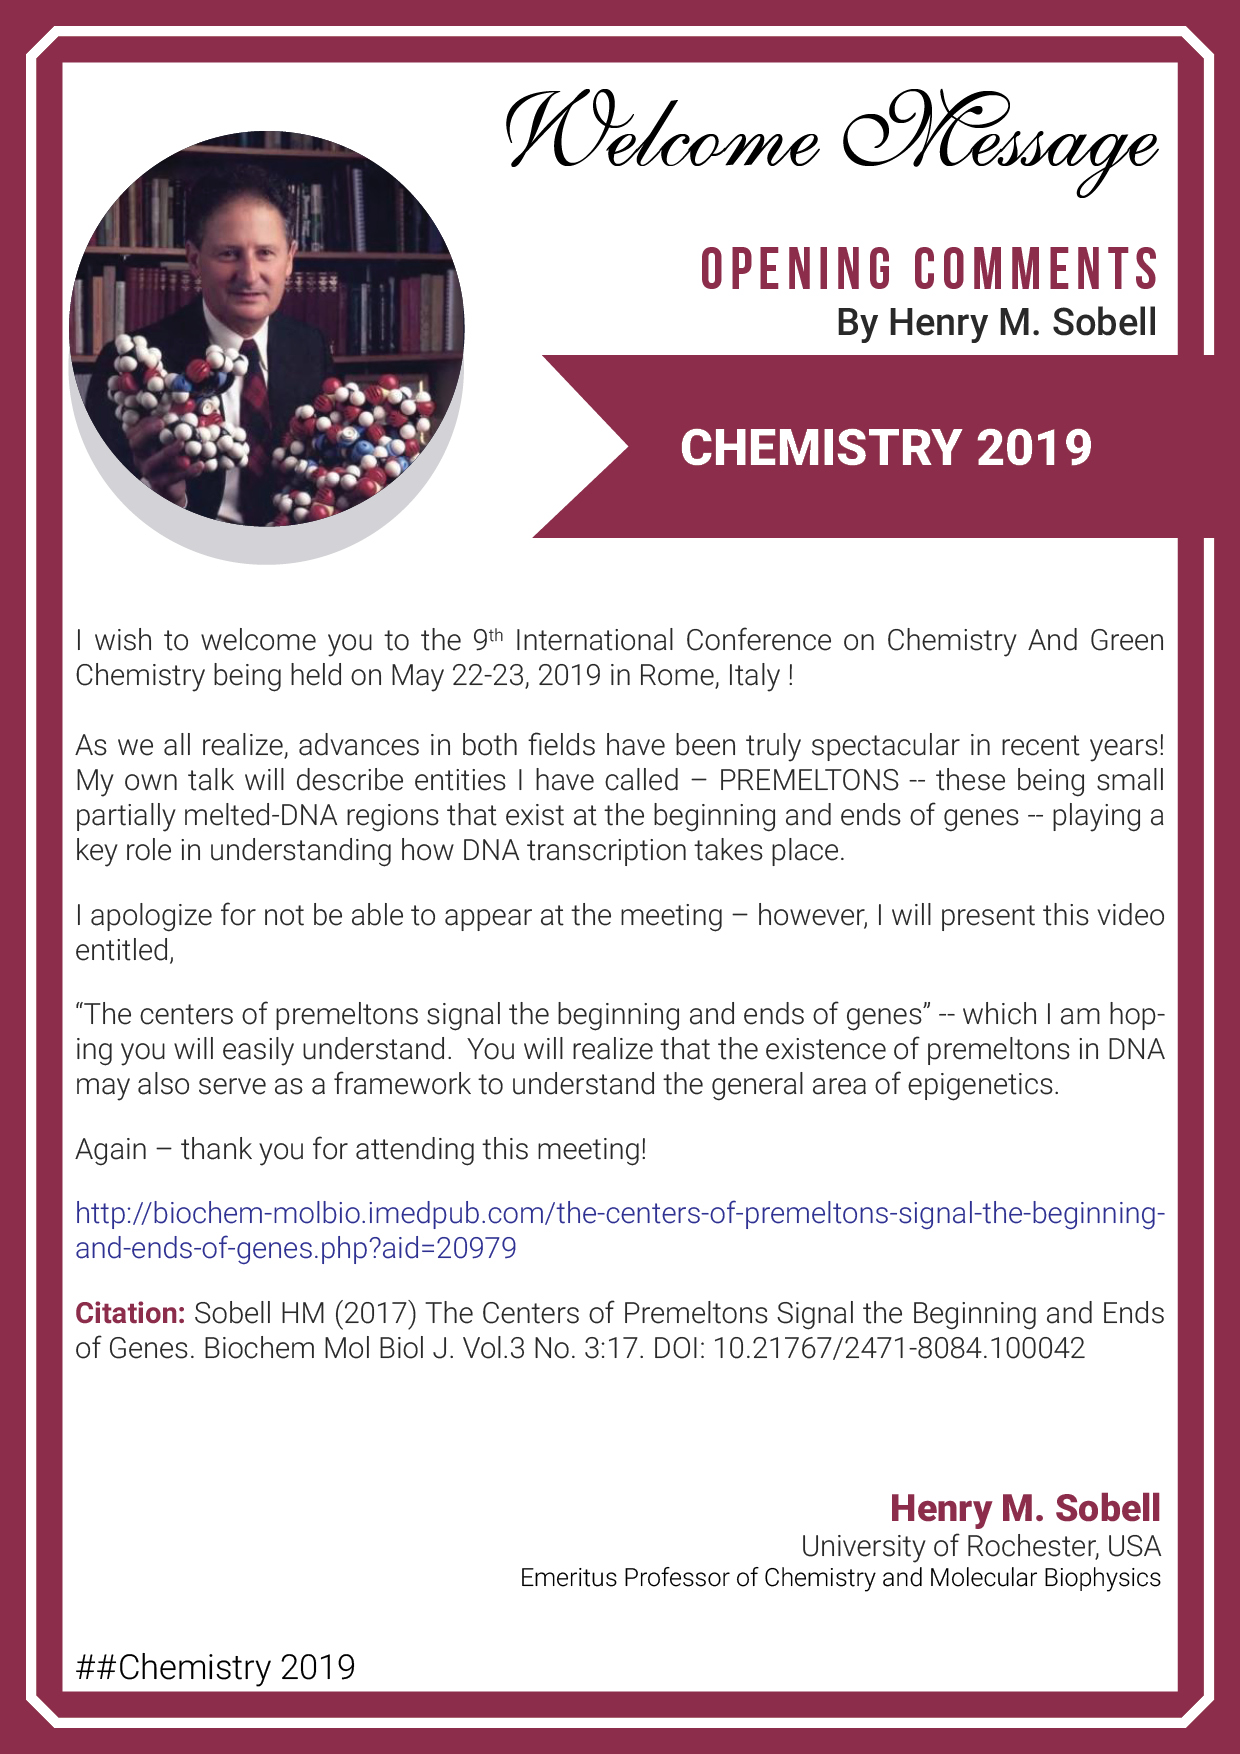 Chemistry Conferences | Top Chemistry Congress 2019 | Chemistry